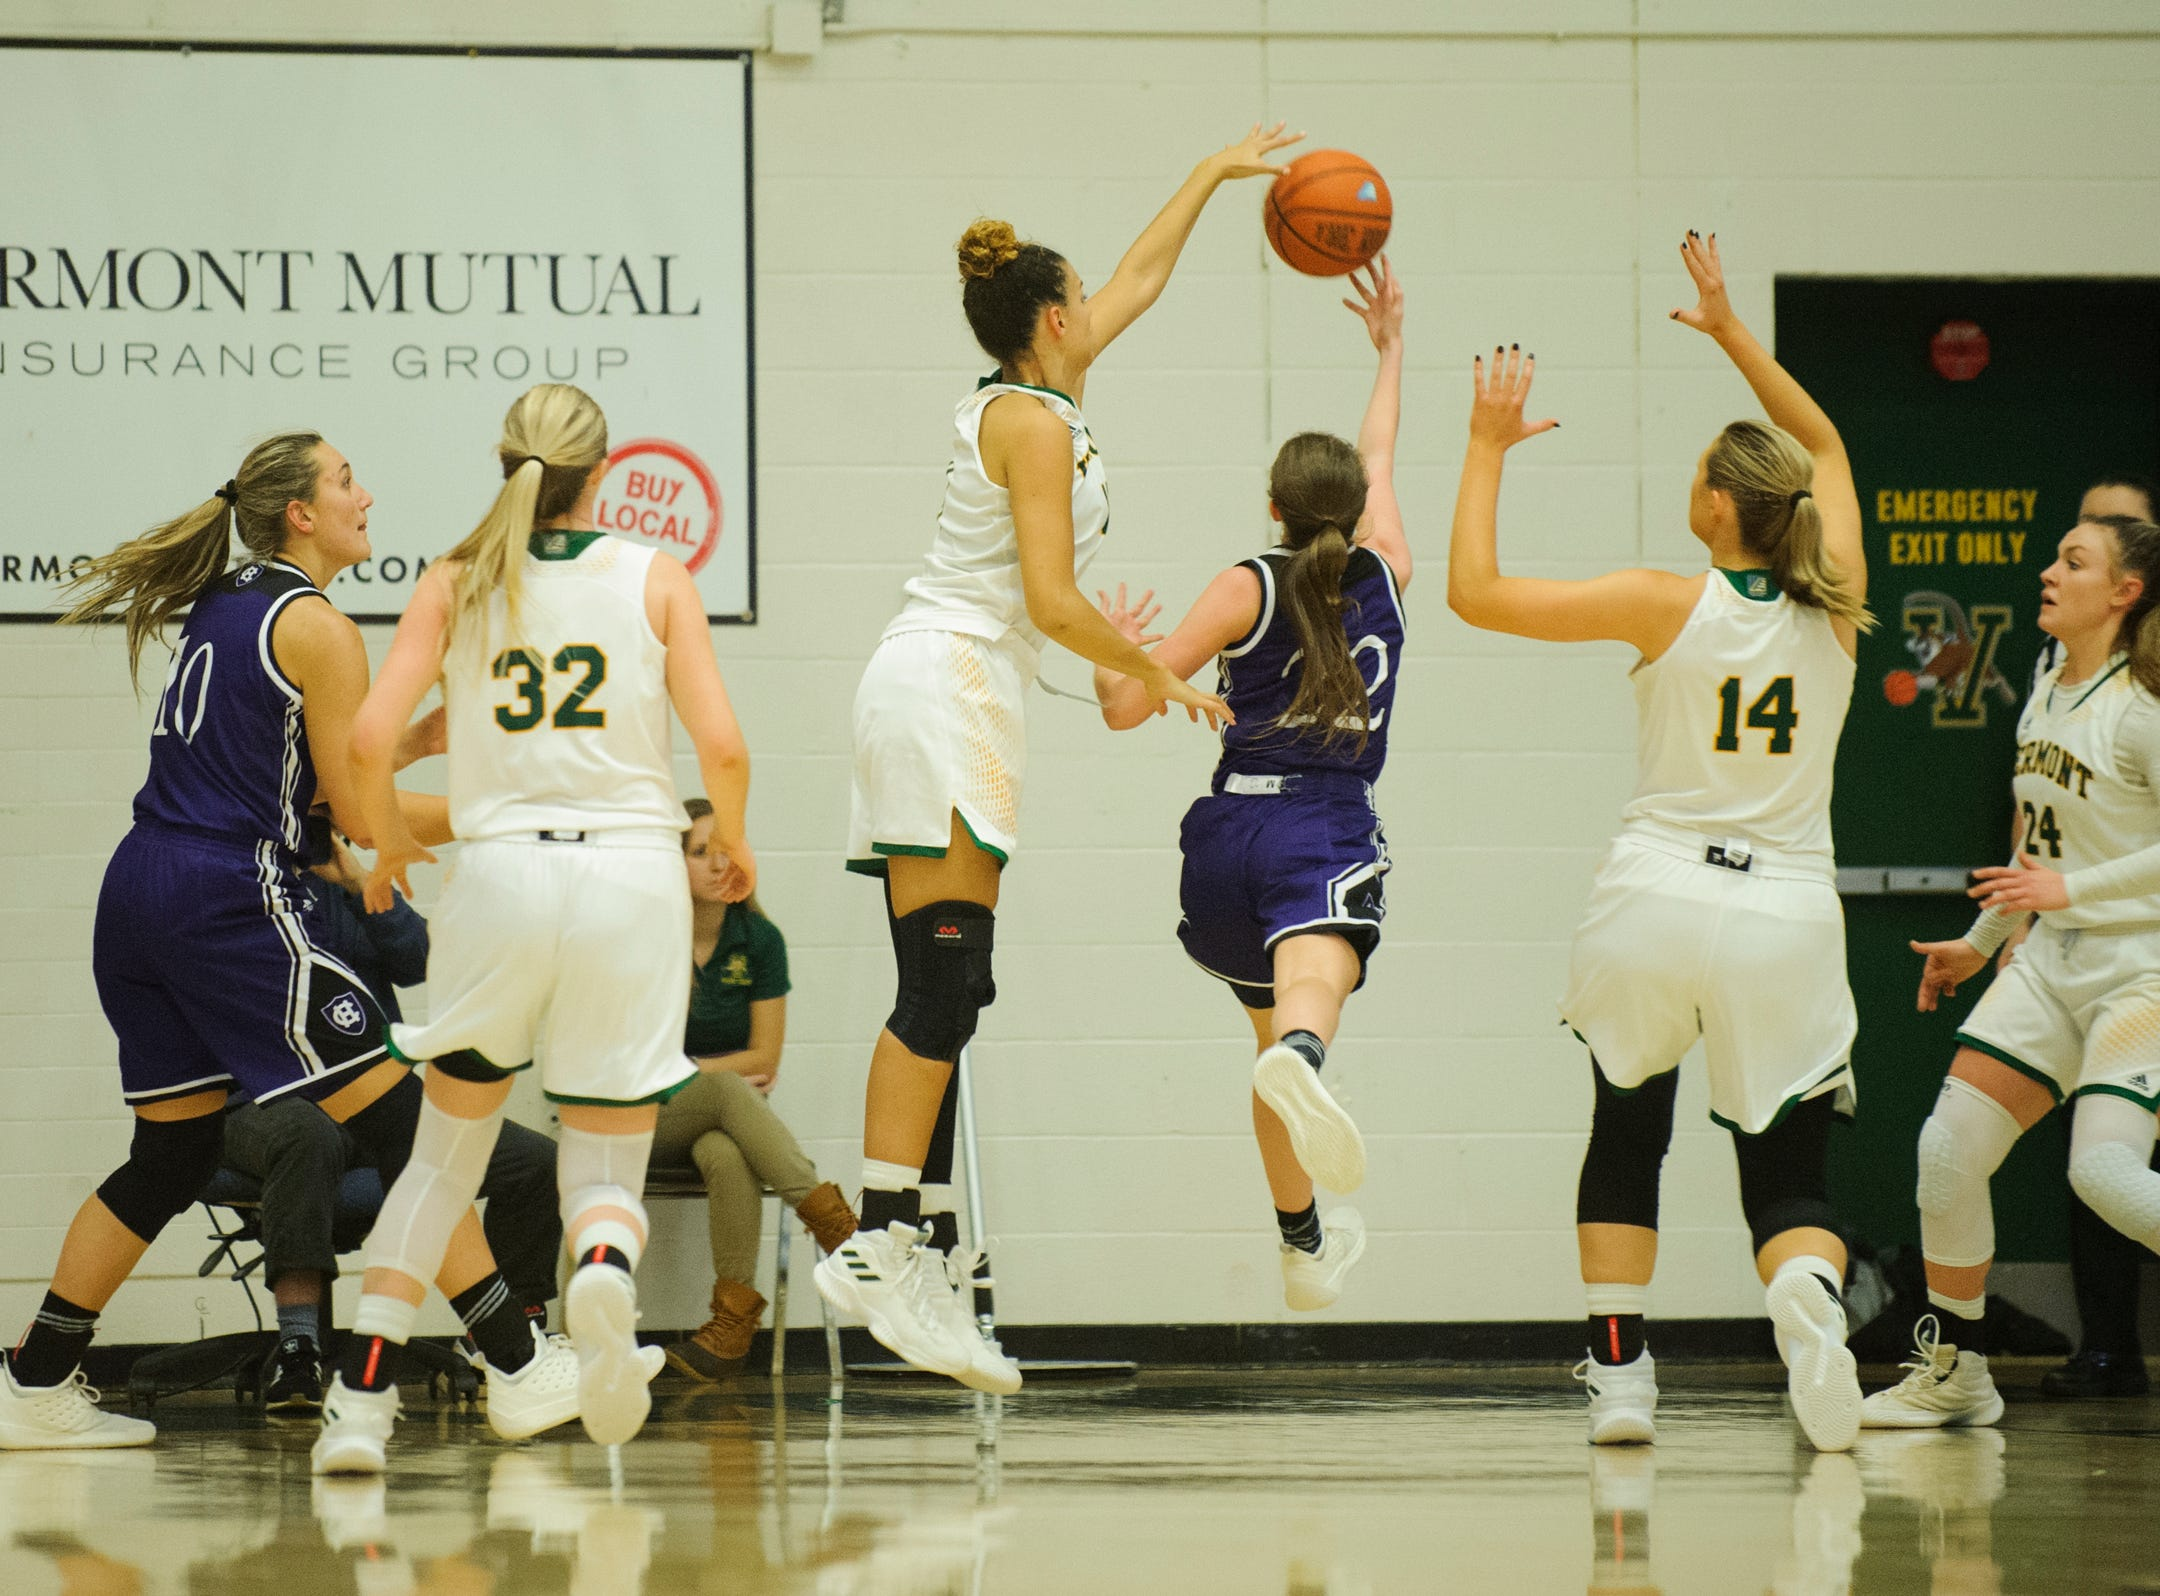 Vermont's Candice Wright (11) blocks the shot by Holy Cross' Nicole Morris (22) during the women's basketball game between the Holy Cross Crusaders and the Vermont Catamounts at Patrick Gym on Wednesday night November 28, 2018 in Burlington.